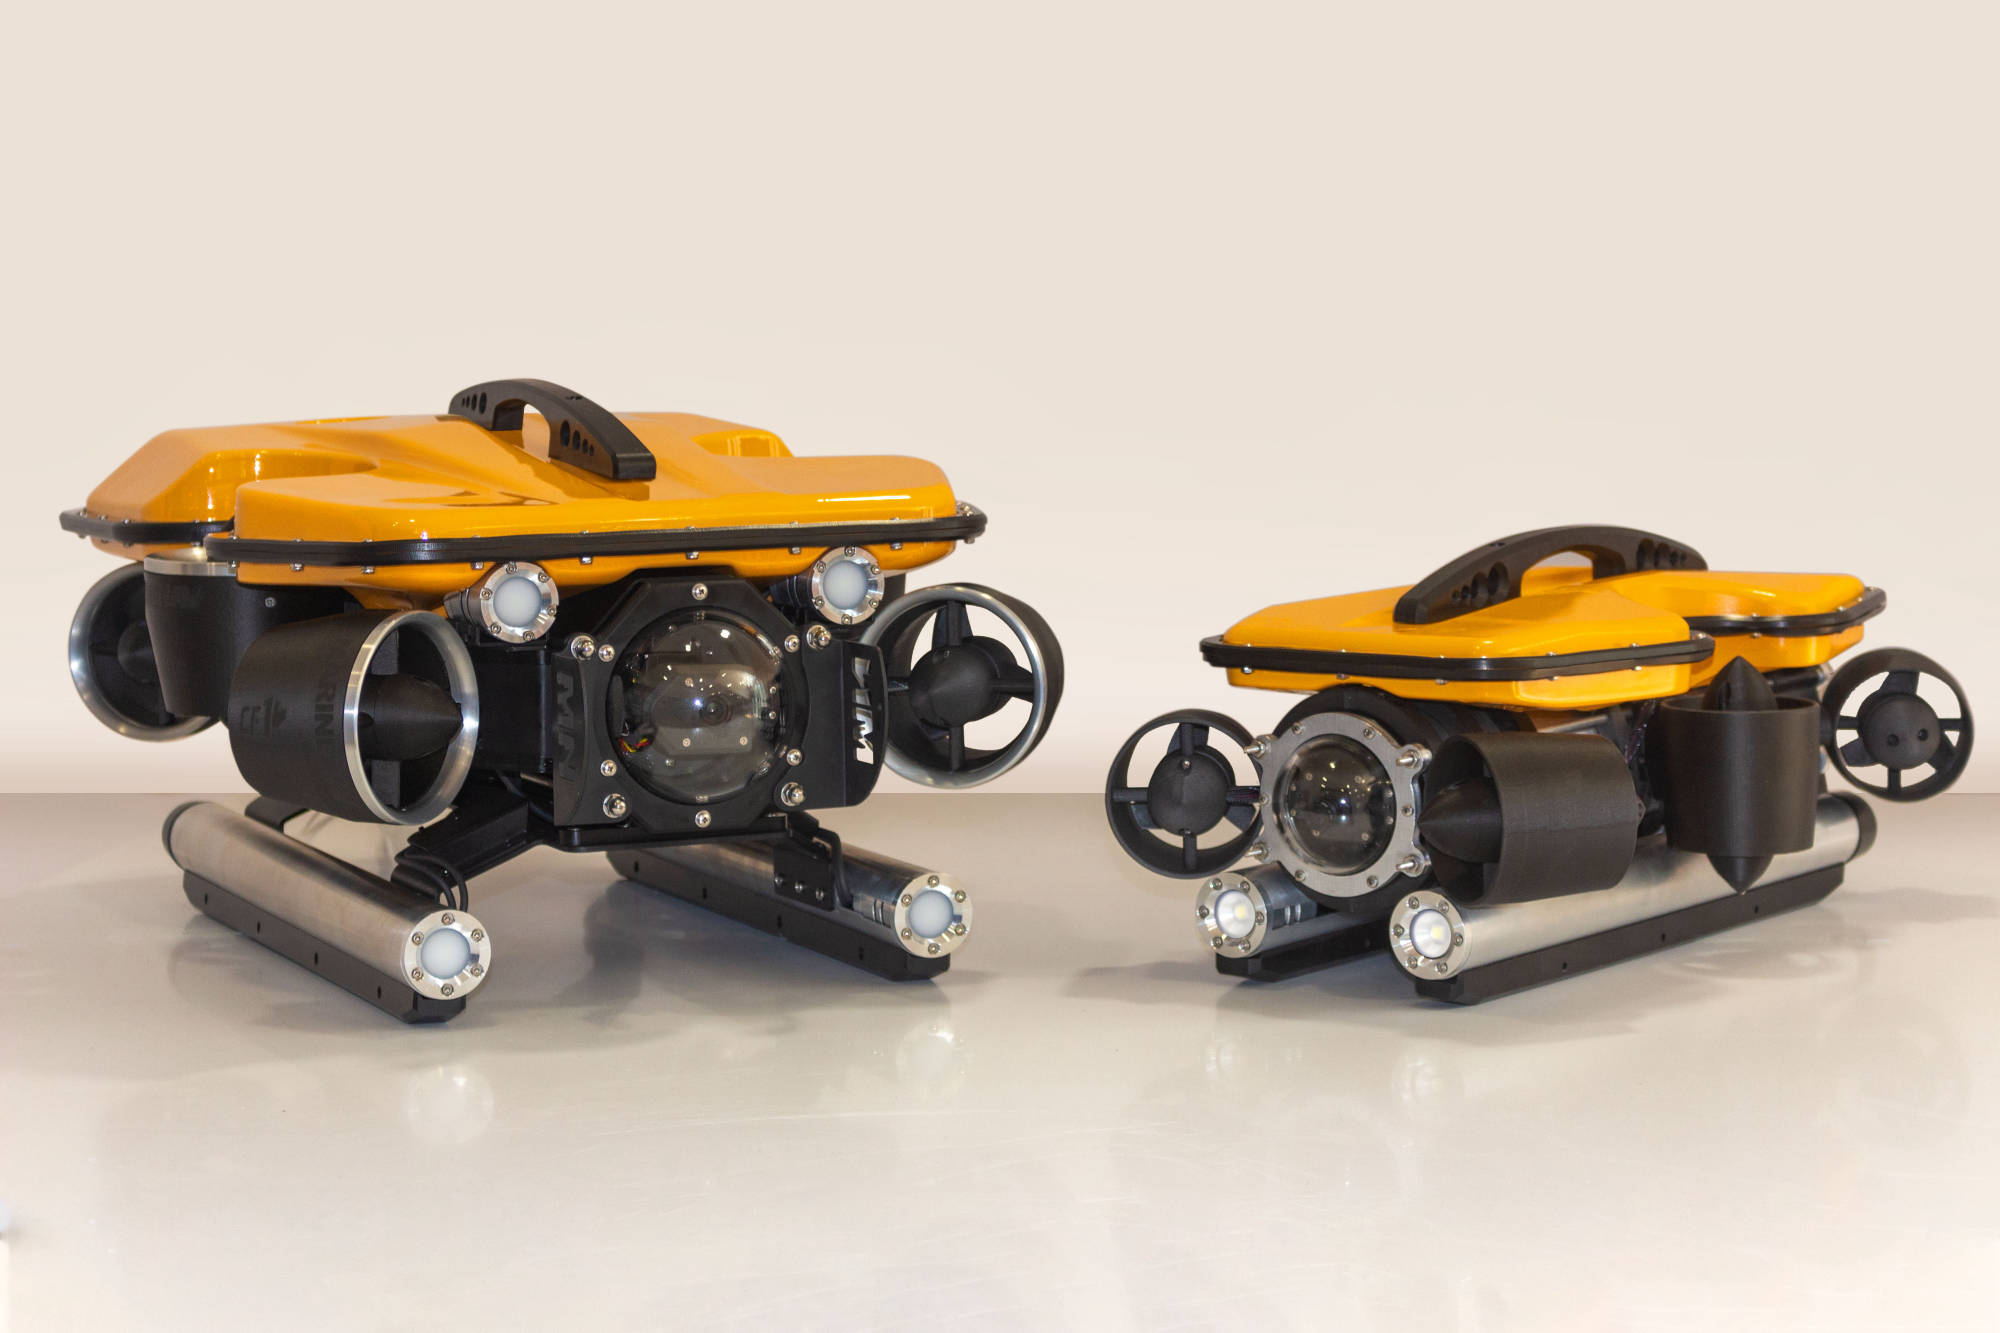 Oceanus Pro and Mini ROV - sizing comparison